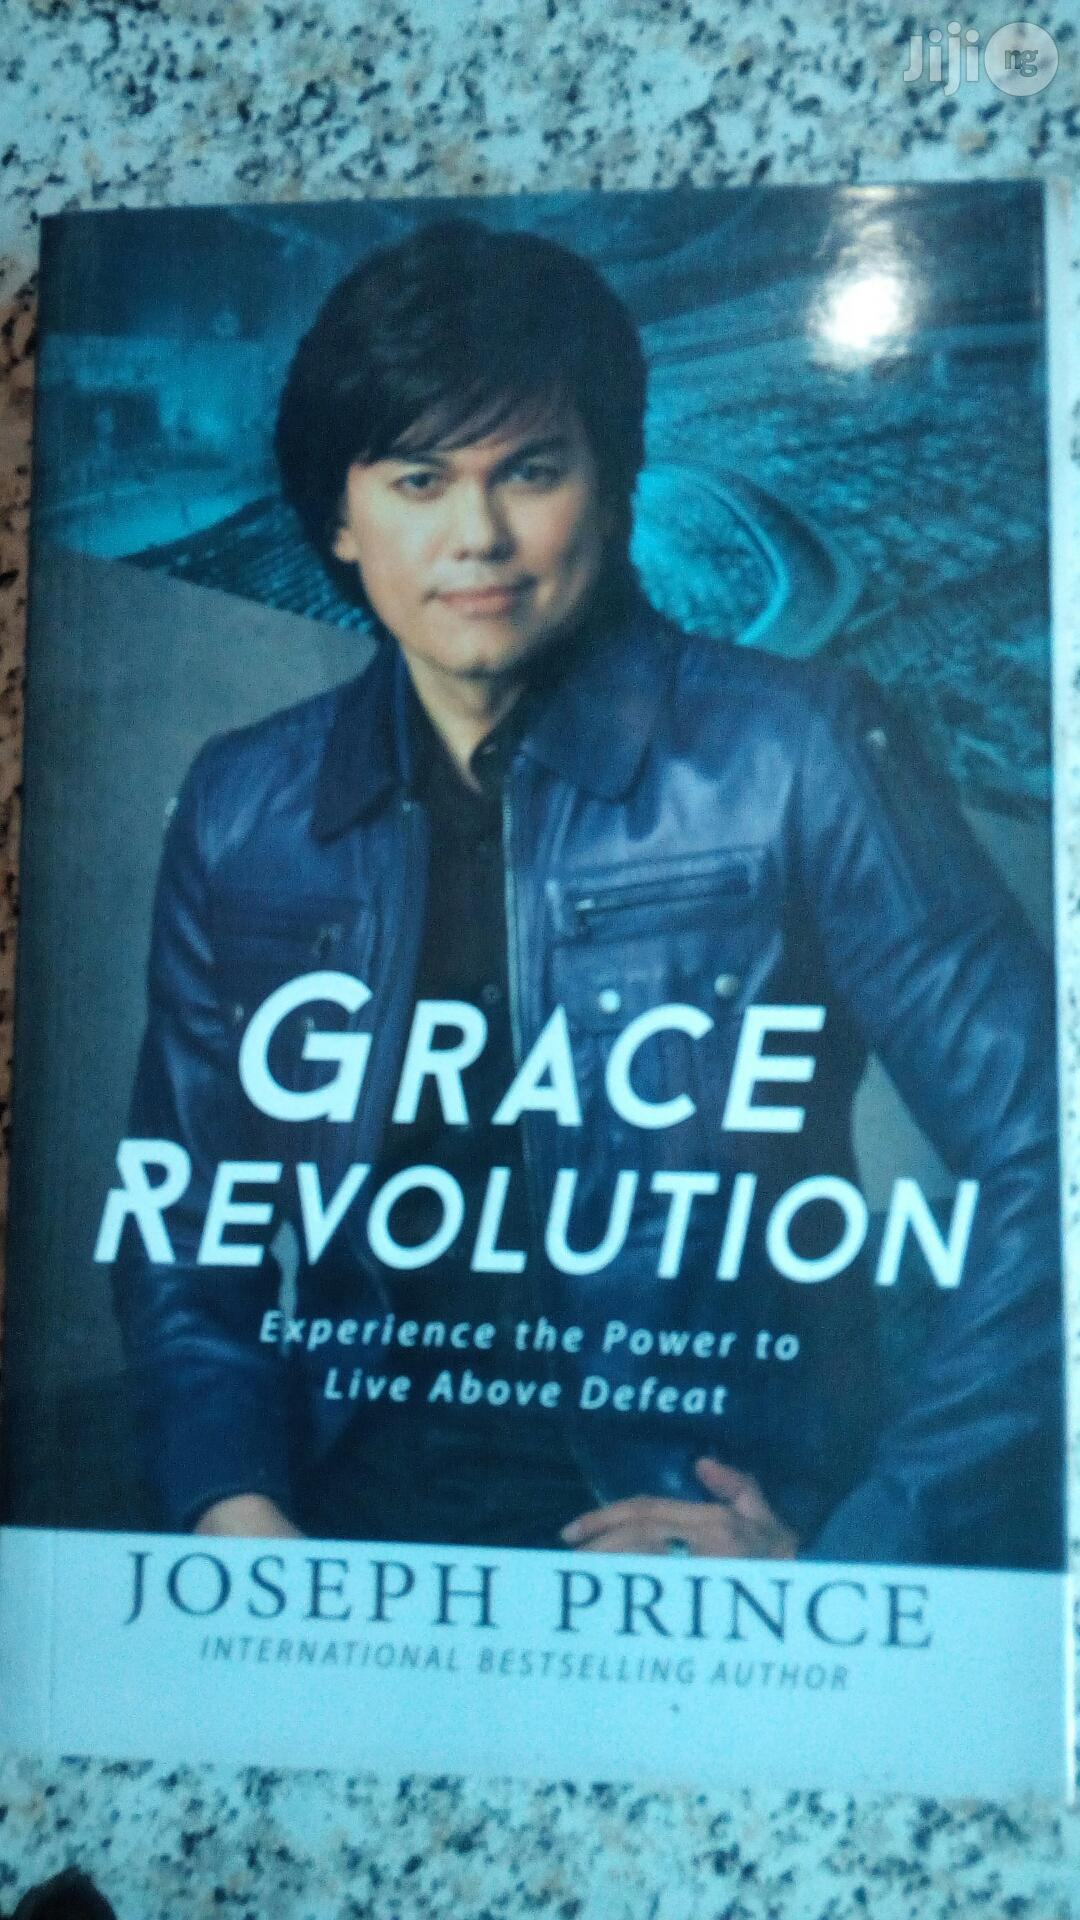 Grace Revolution By Joseph Prince | Stationery for sale in Yaba, Lagos State, Nigeria